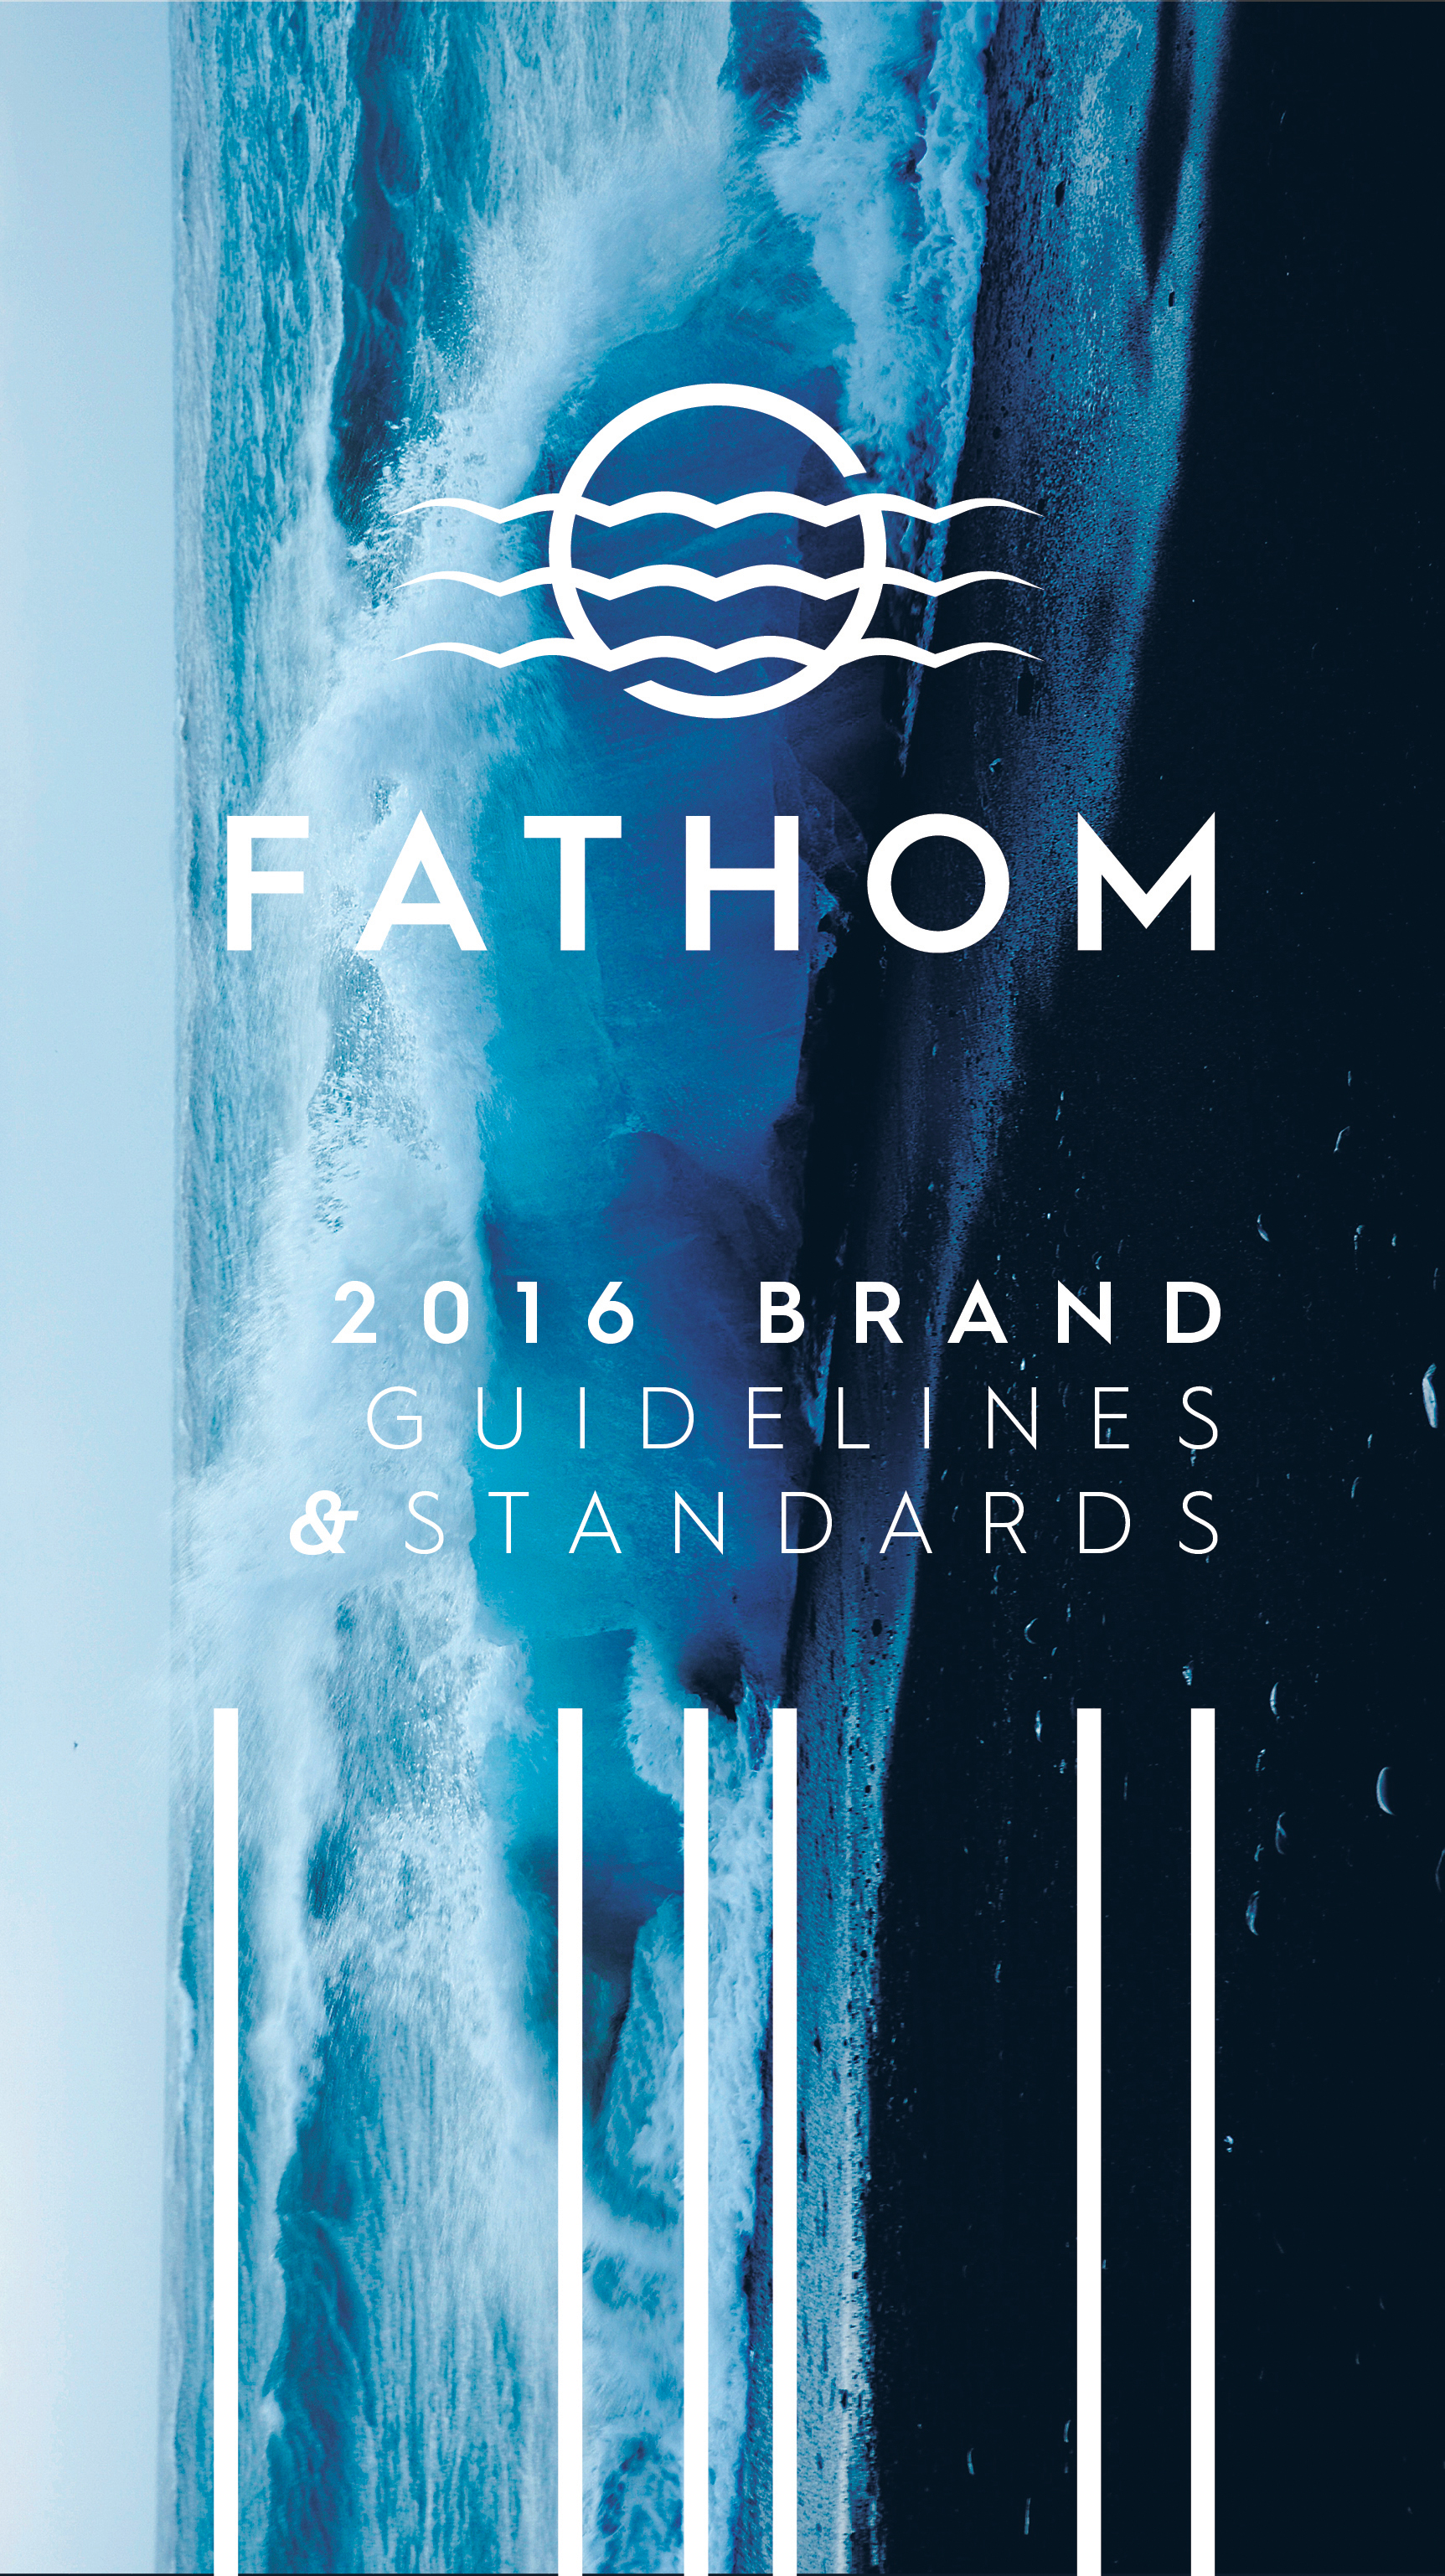 Fathom - For this branding project subject, I was given water so I chose to design around a fictional, commercialized submarine. Included are the mission statement, brand pillars, logo usage, photography usage, colors available to use, stationery and collateral for the brand.I also created a brochure to be given to possible clients regarding more information about the commercialized subs, which was a 16 page, saddle stiched booklet.